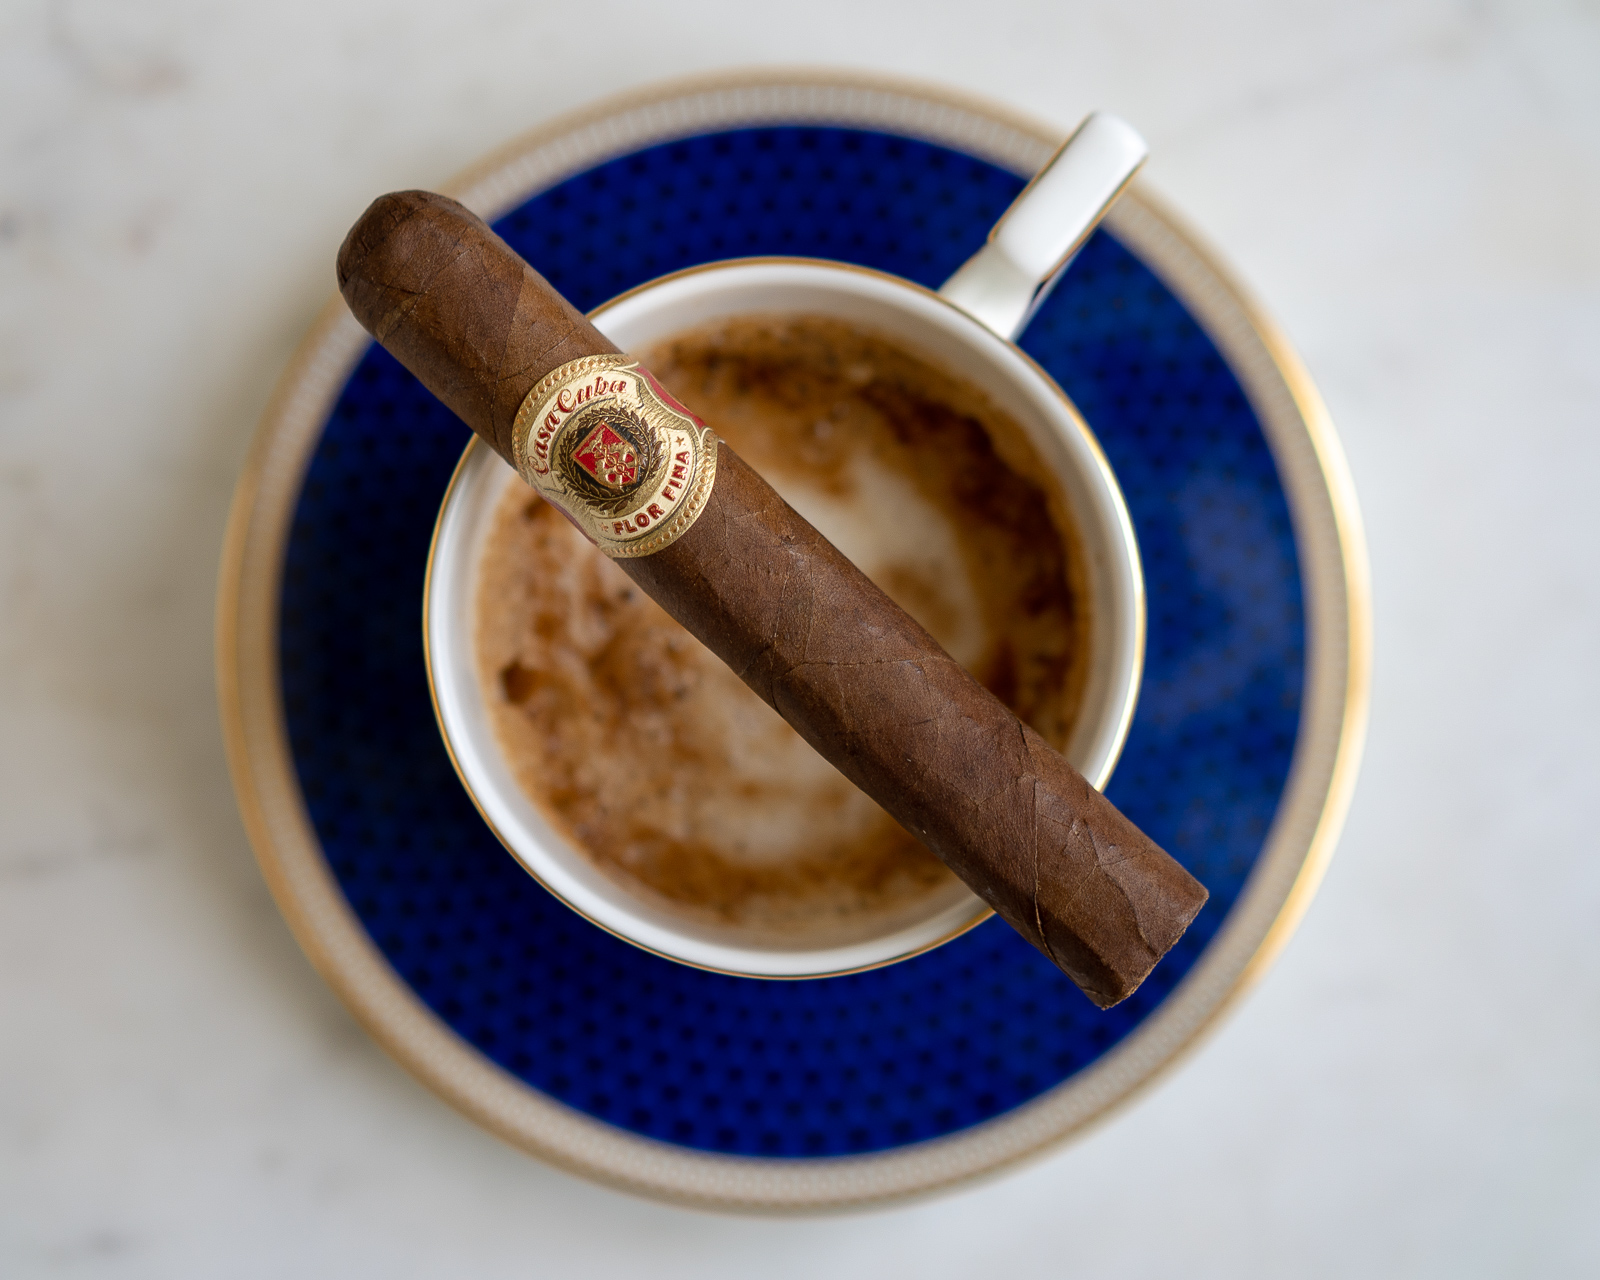 Arturo Fuente Casa Cuba Doble Cinco review 2